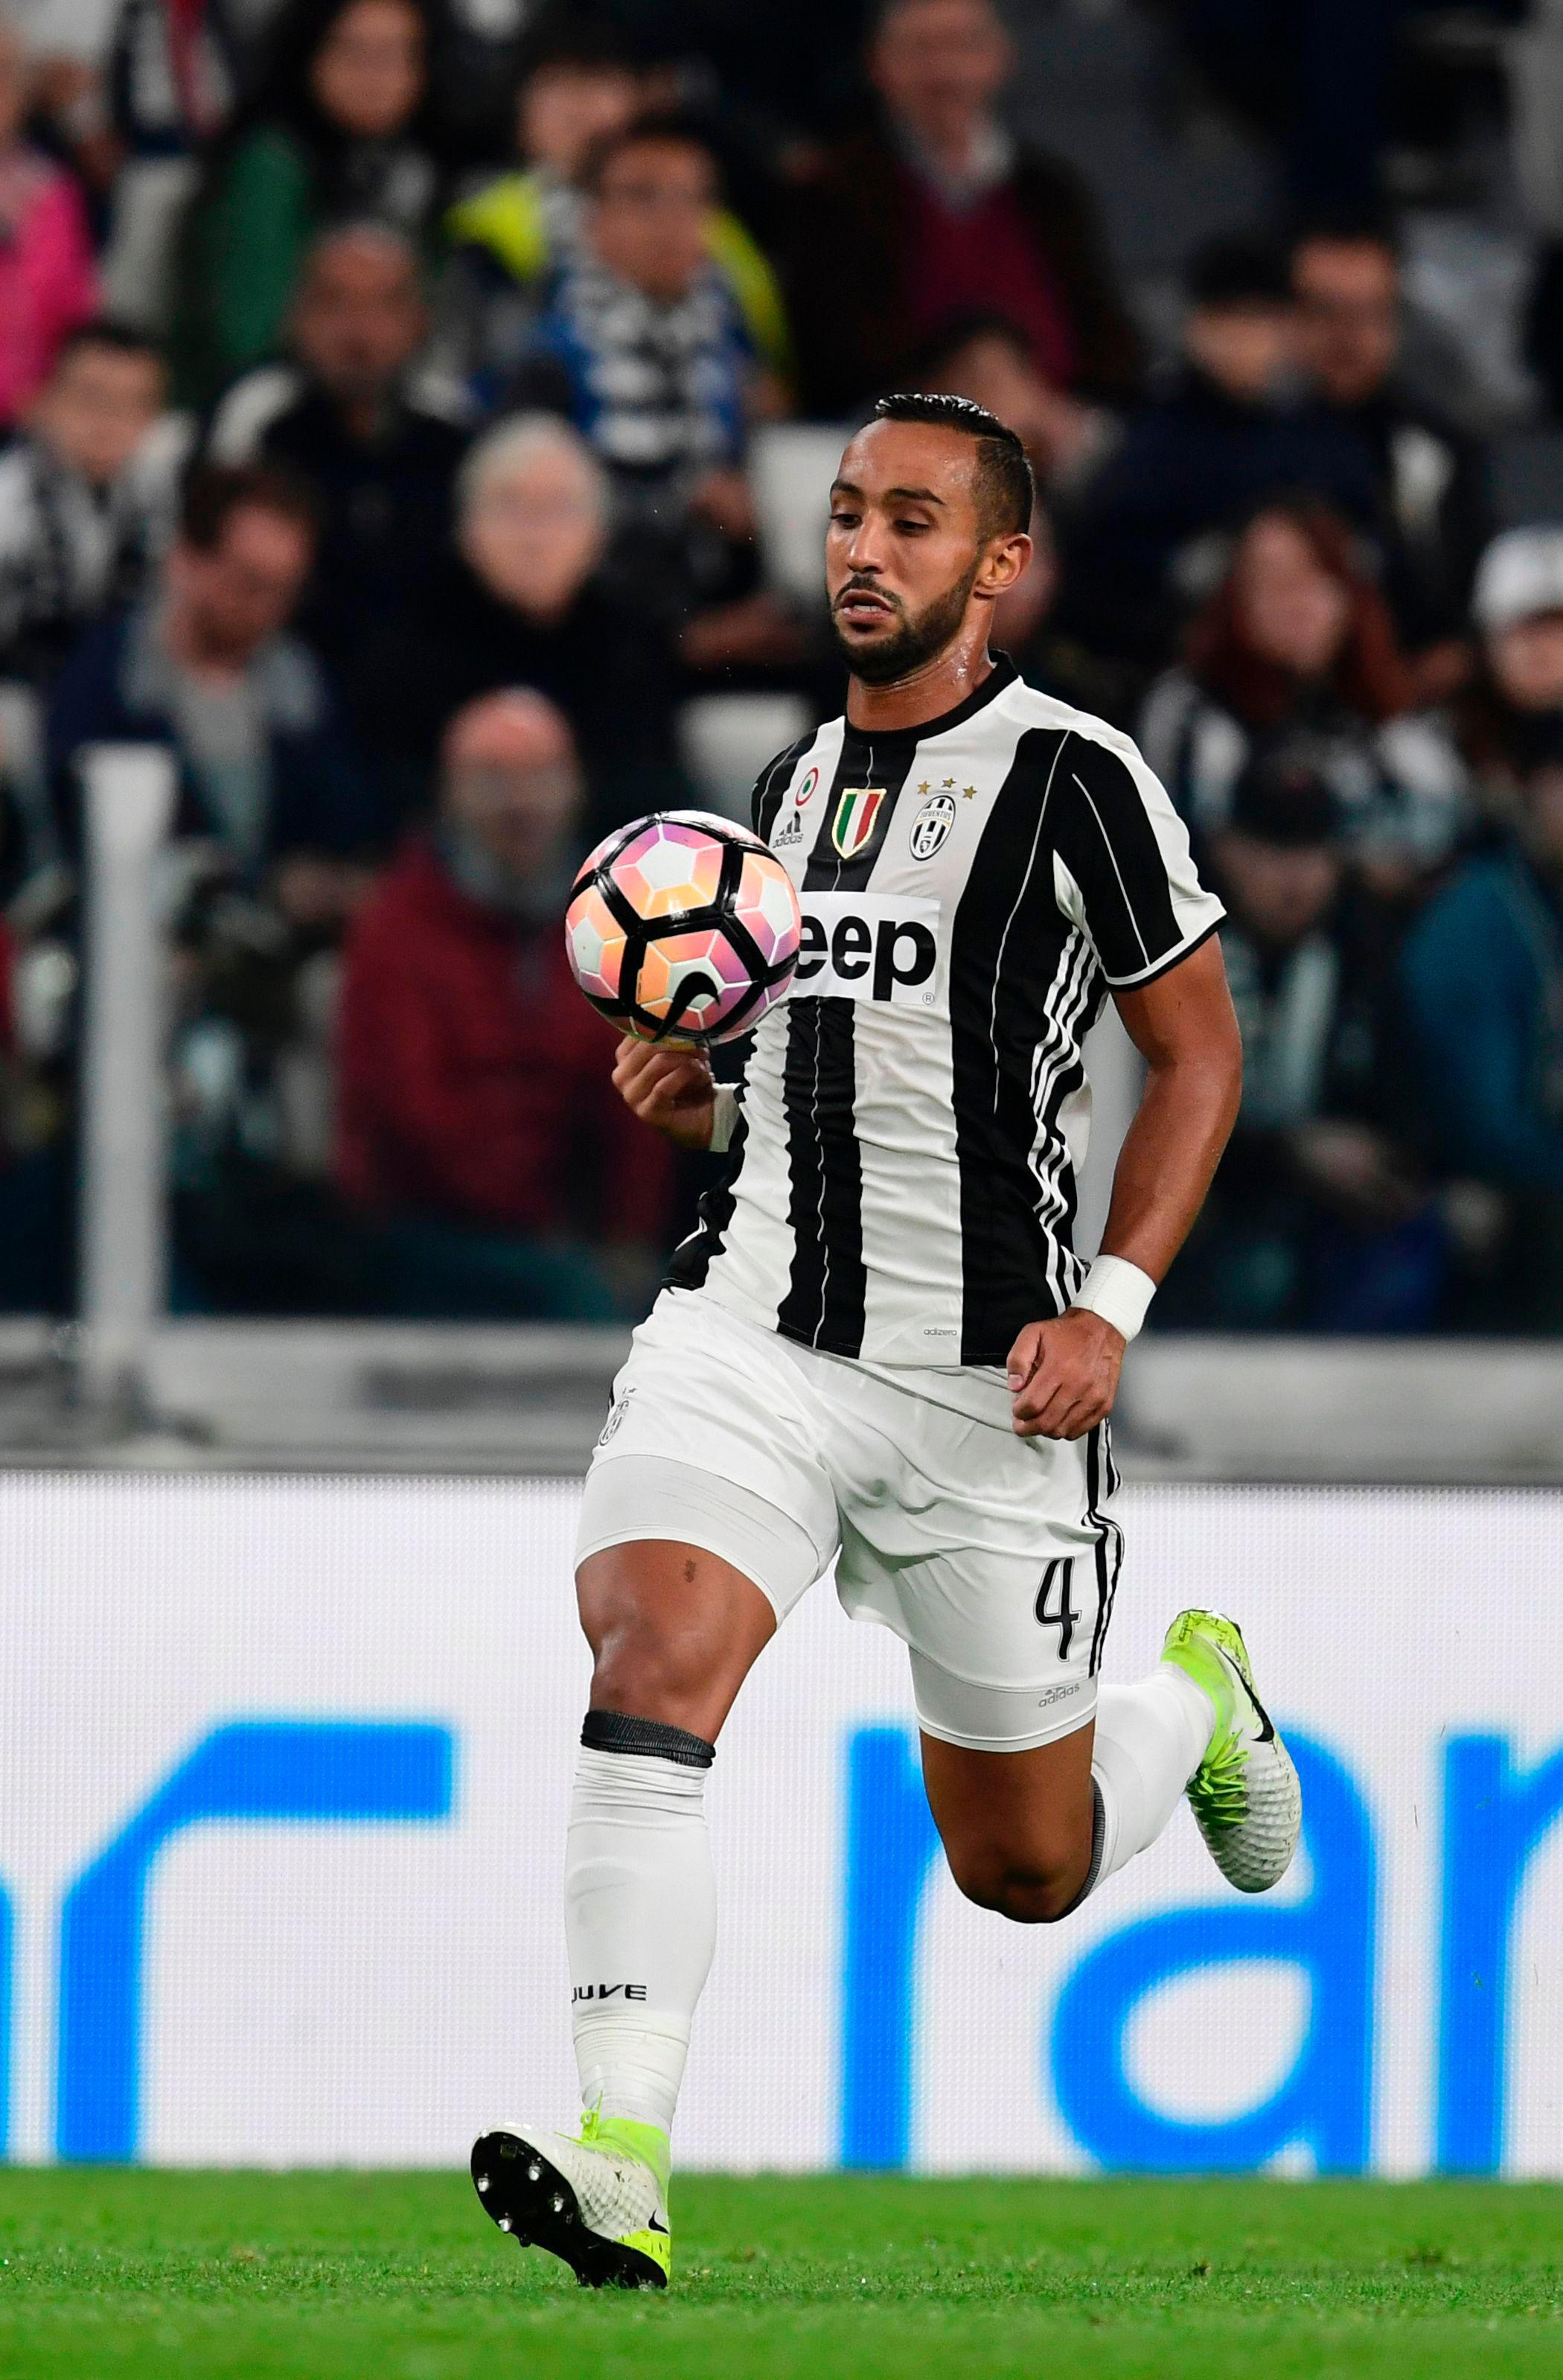 Juventus star Mehdi Benatia was furious being racially abused on live TV